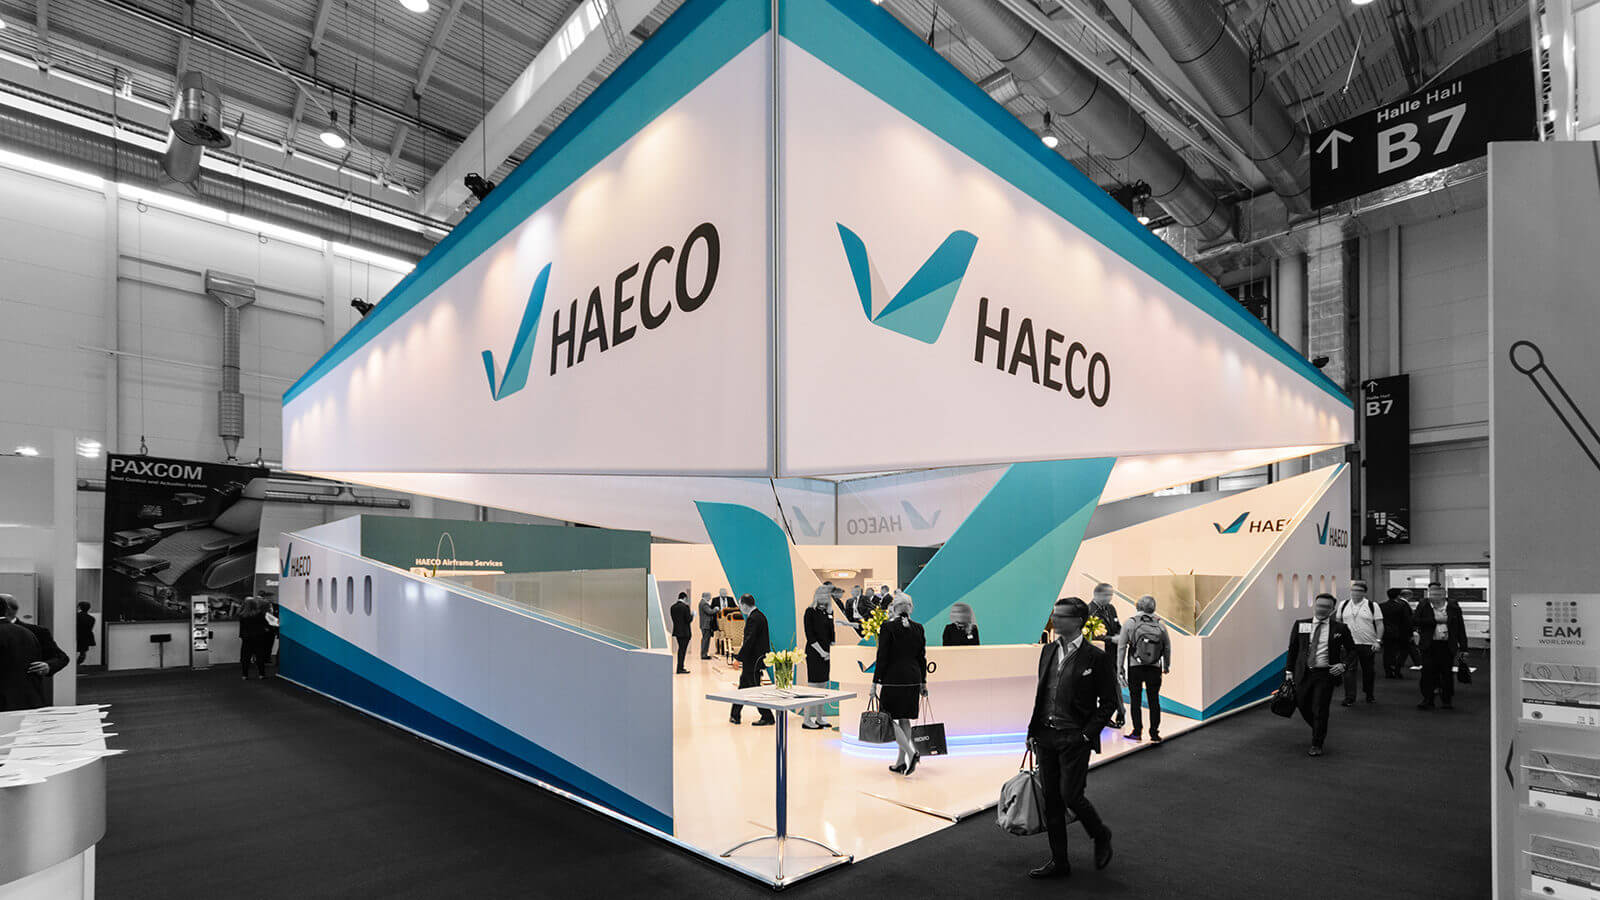 HAECO<br>264 m²<br>Aircraft Interiors Expo